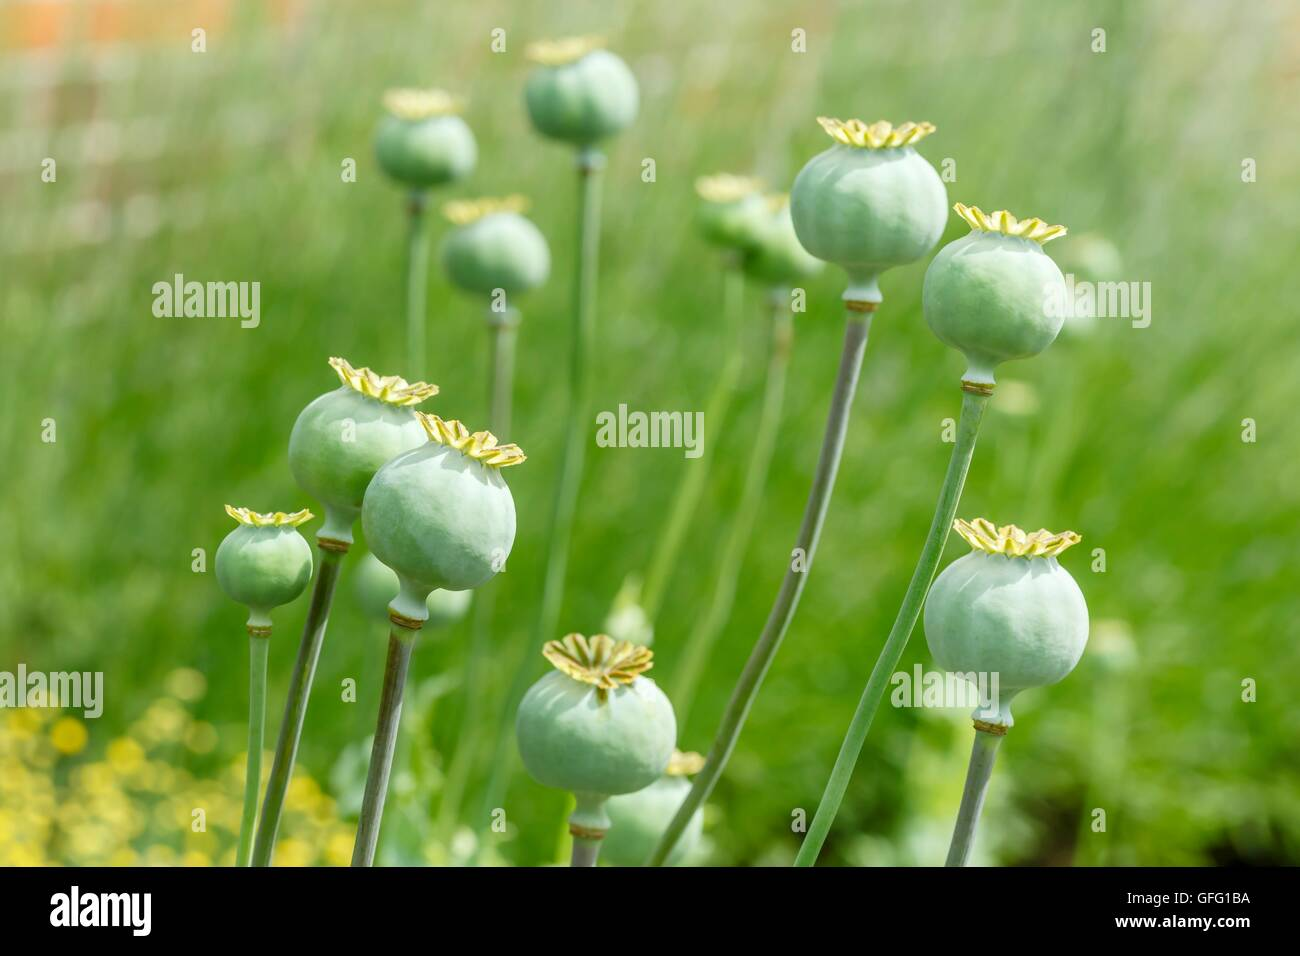 Closeup of green poppy seed pods in a garden - Stock Image